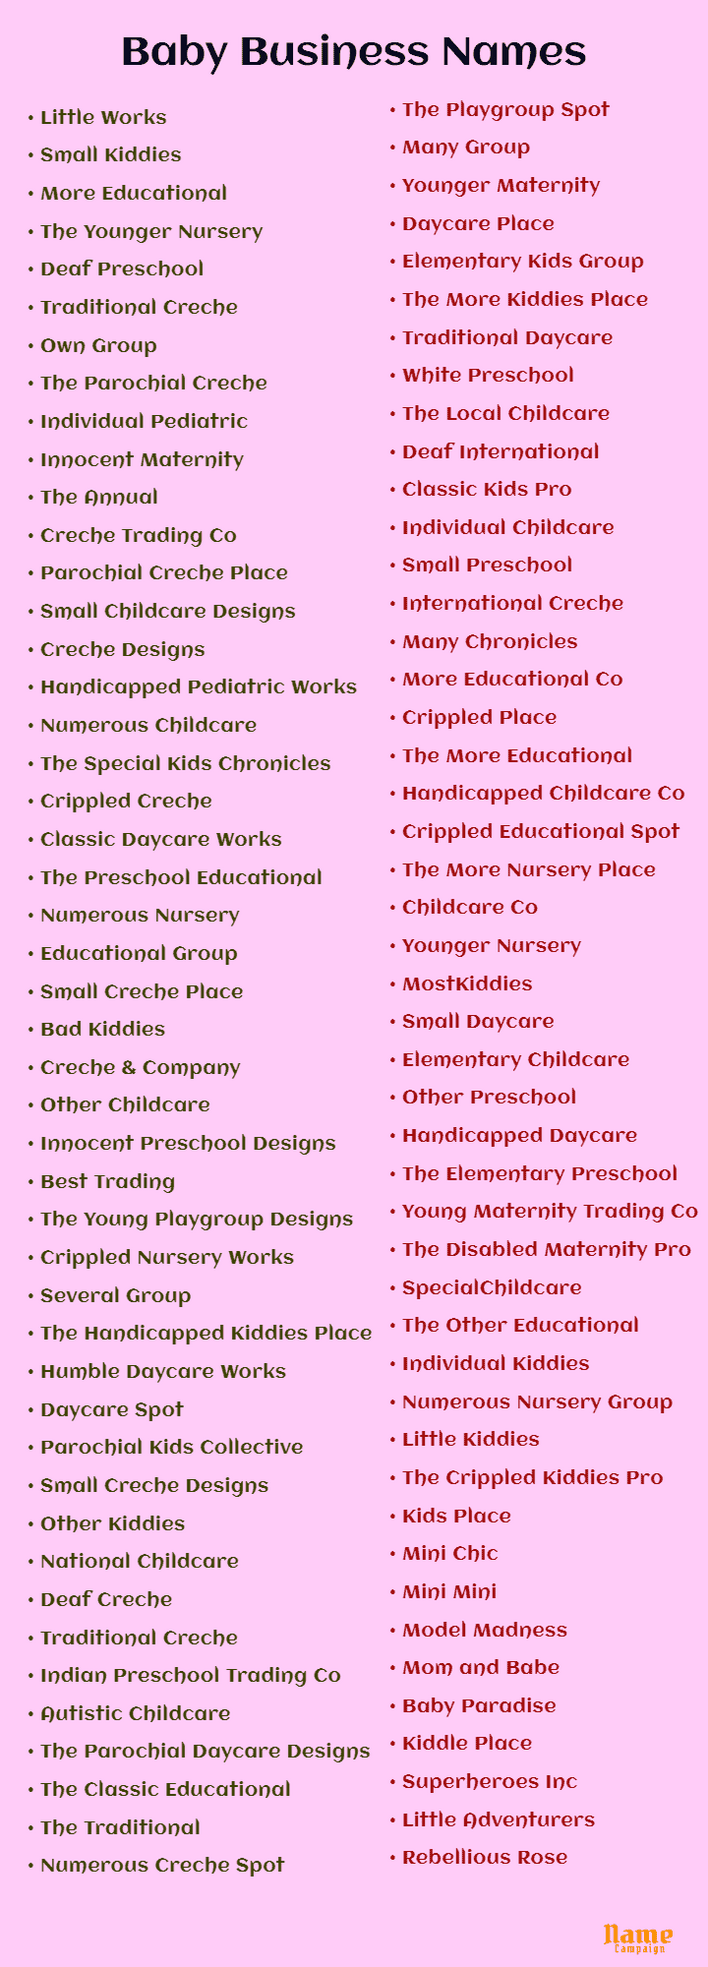 baby clothes brand names